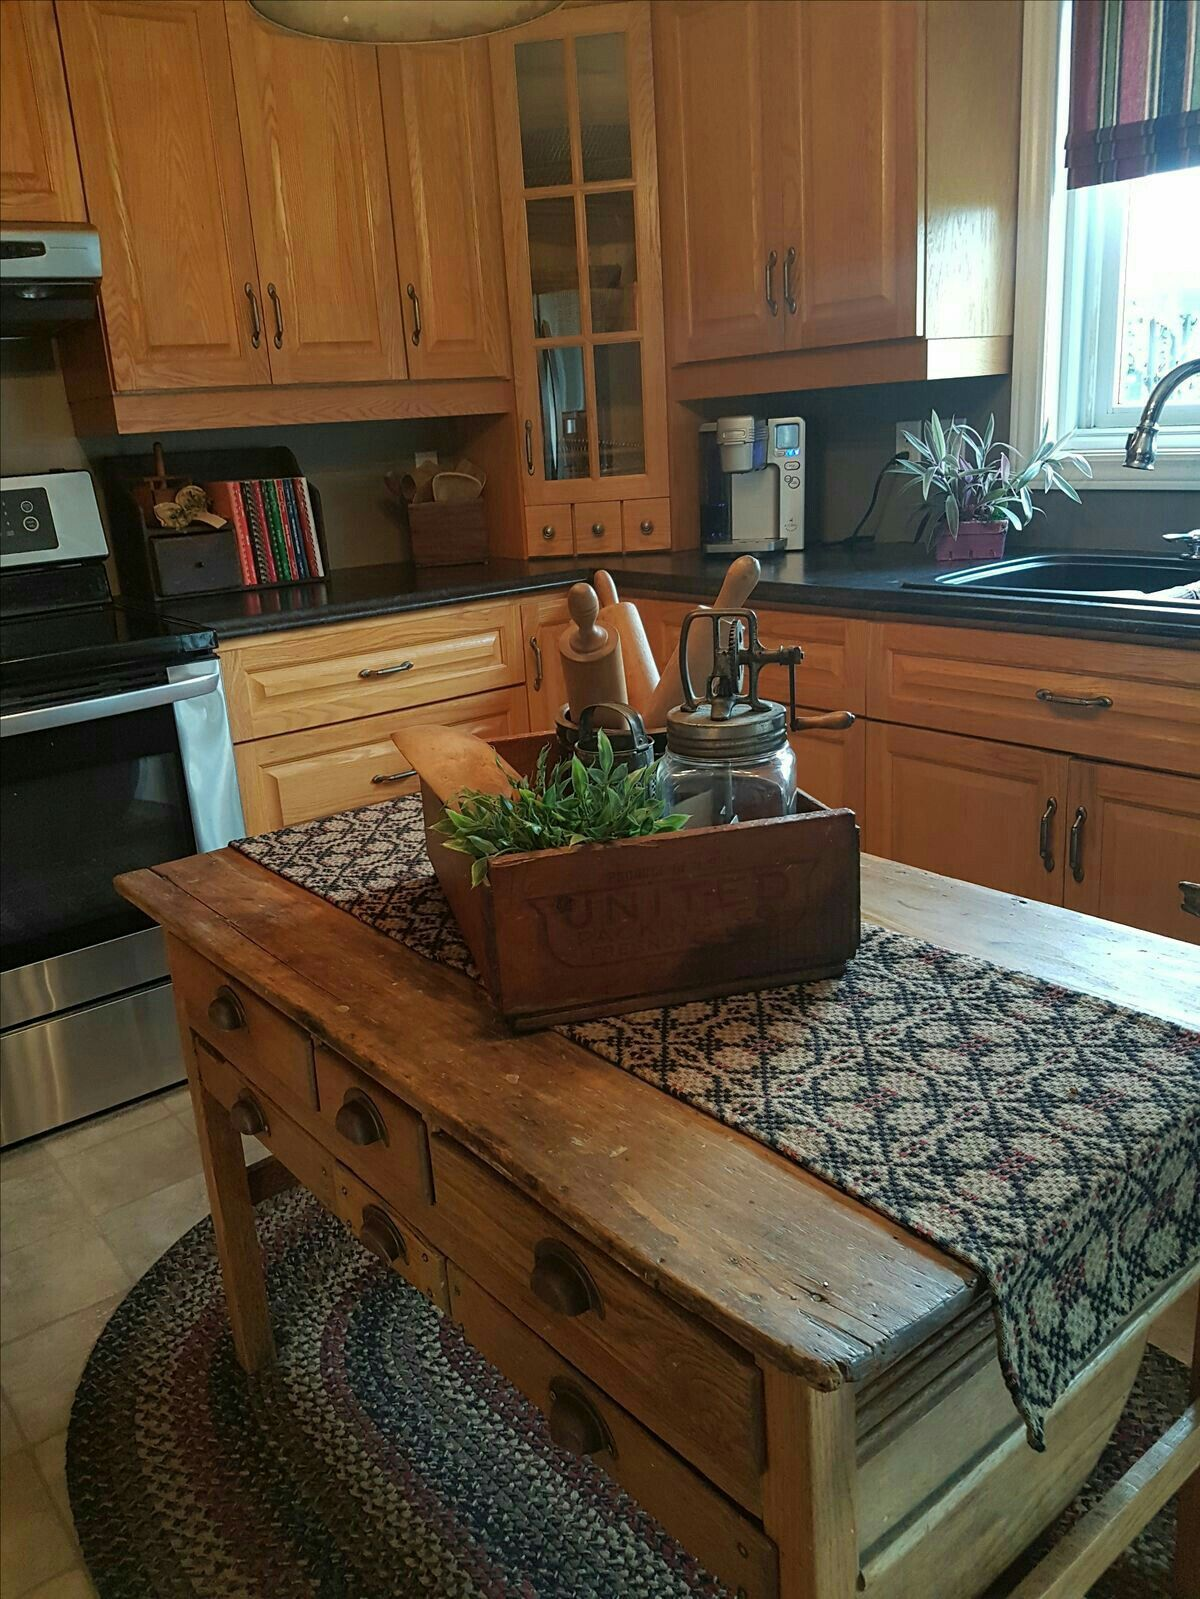 Pin By Mary Moore On Kitchens Home Decor Kitchen Country Kitchen New Kitchen Cabinets